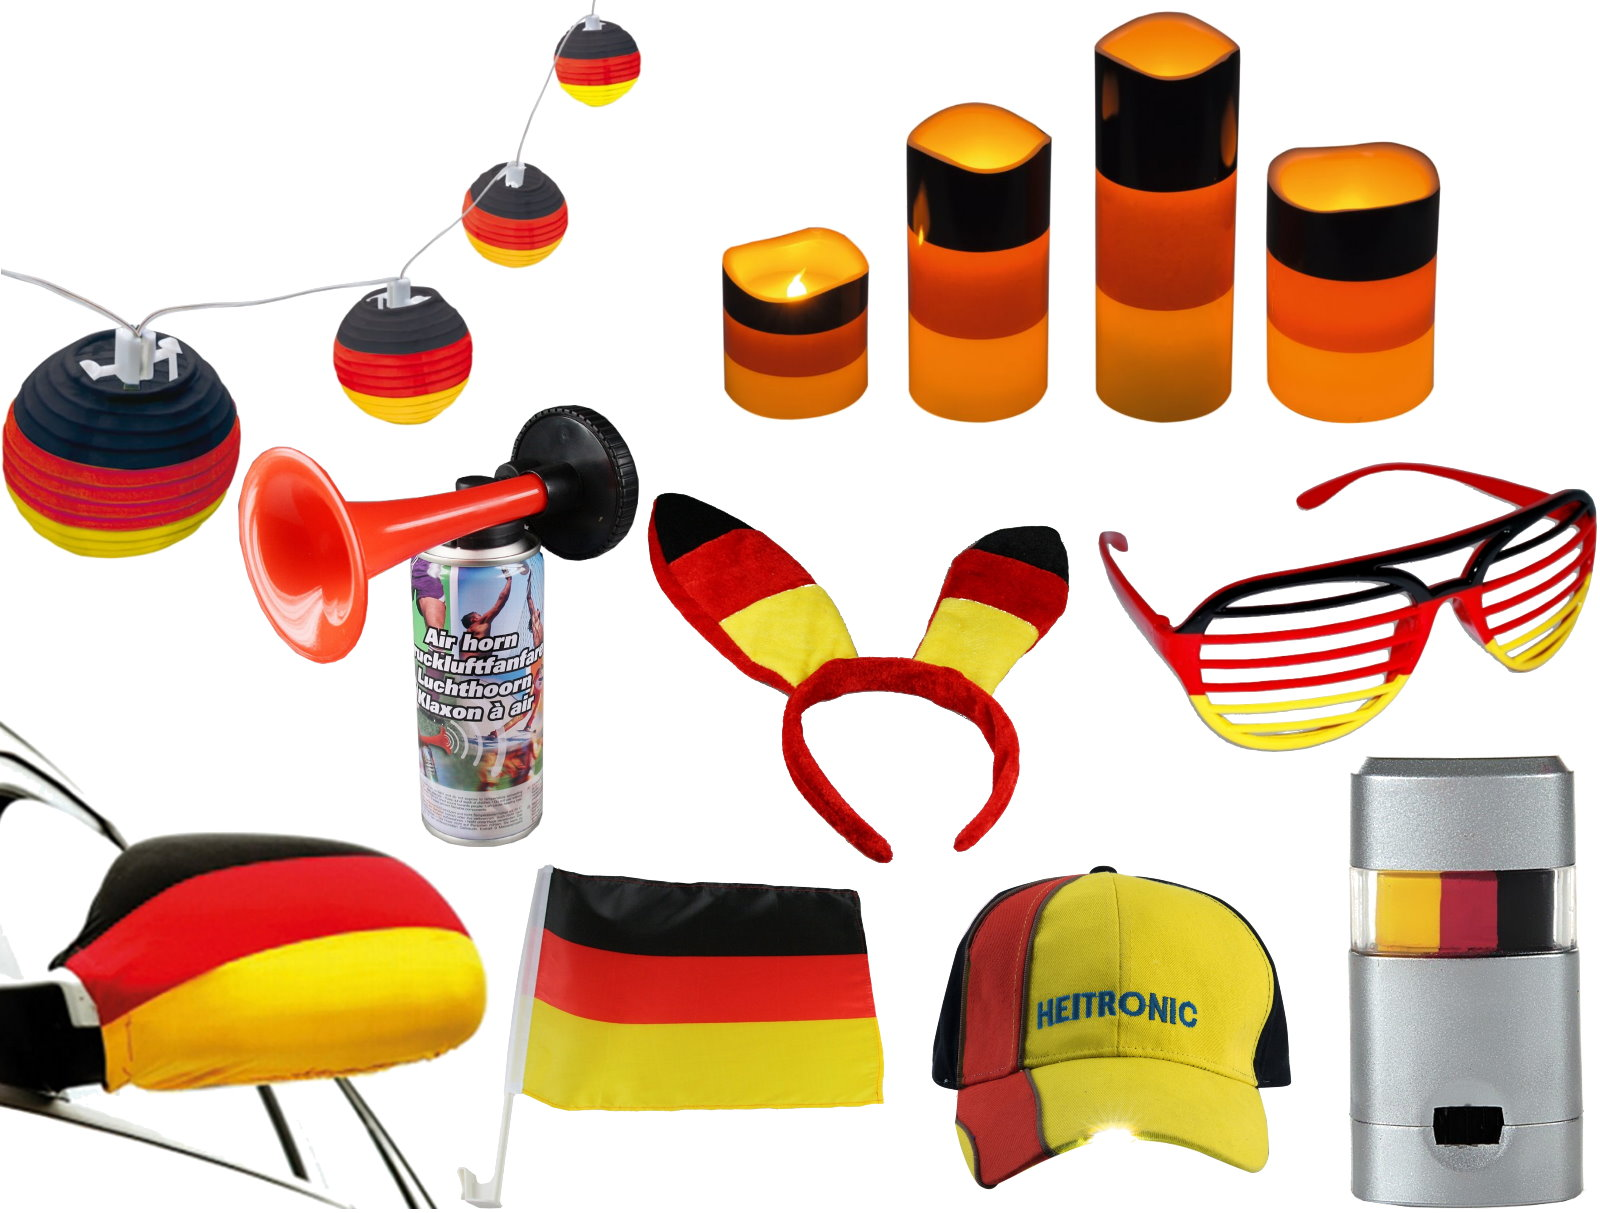 fanartikel deutschland germany wm 2014 brasilien fan artikel fussball brd party ebay. Black Bedroom Furniture Sets. Home Design Ideas